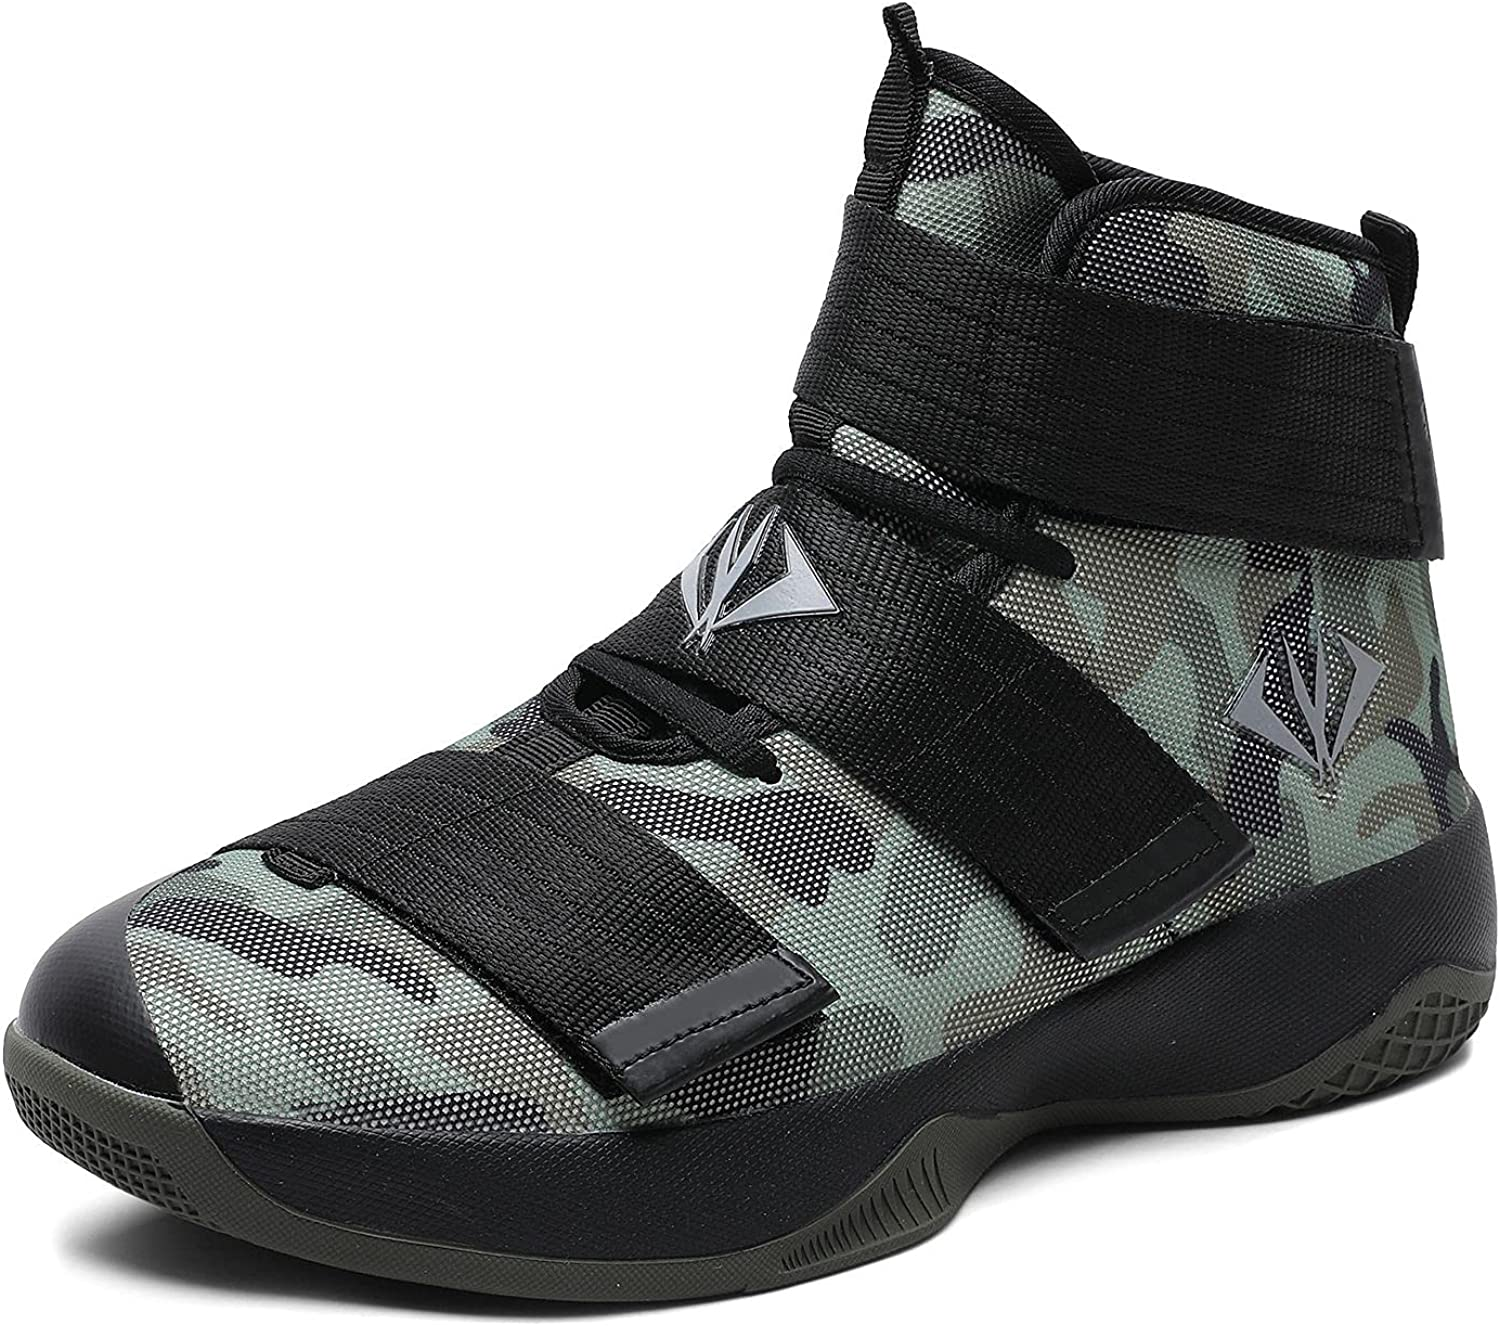 Max 89% OFF MAUGELY Men's Women's Velcro Shoes Breathable Basketball Year-end gift Student